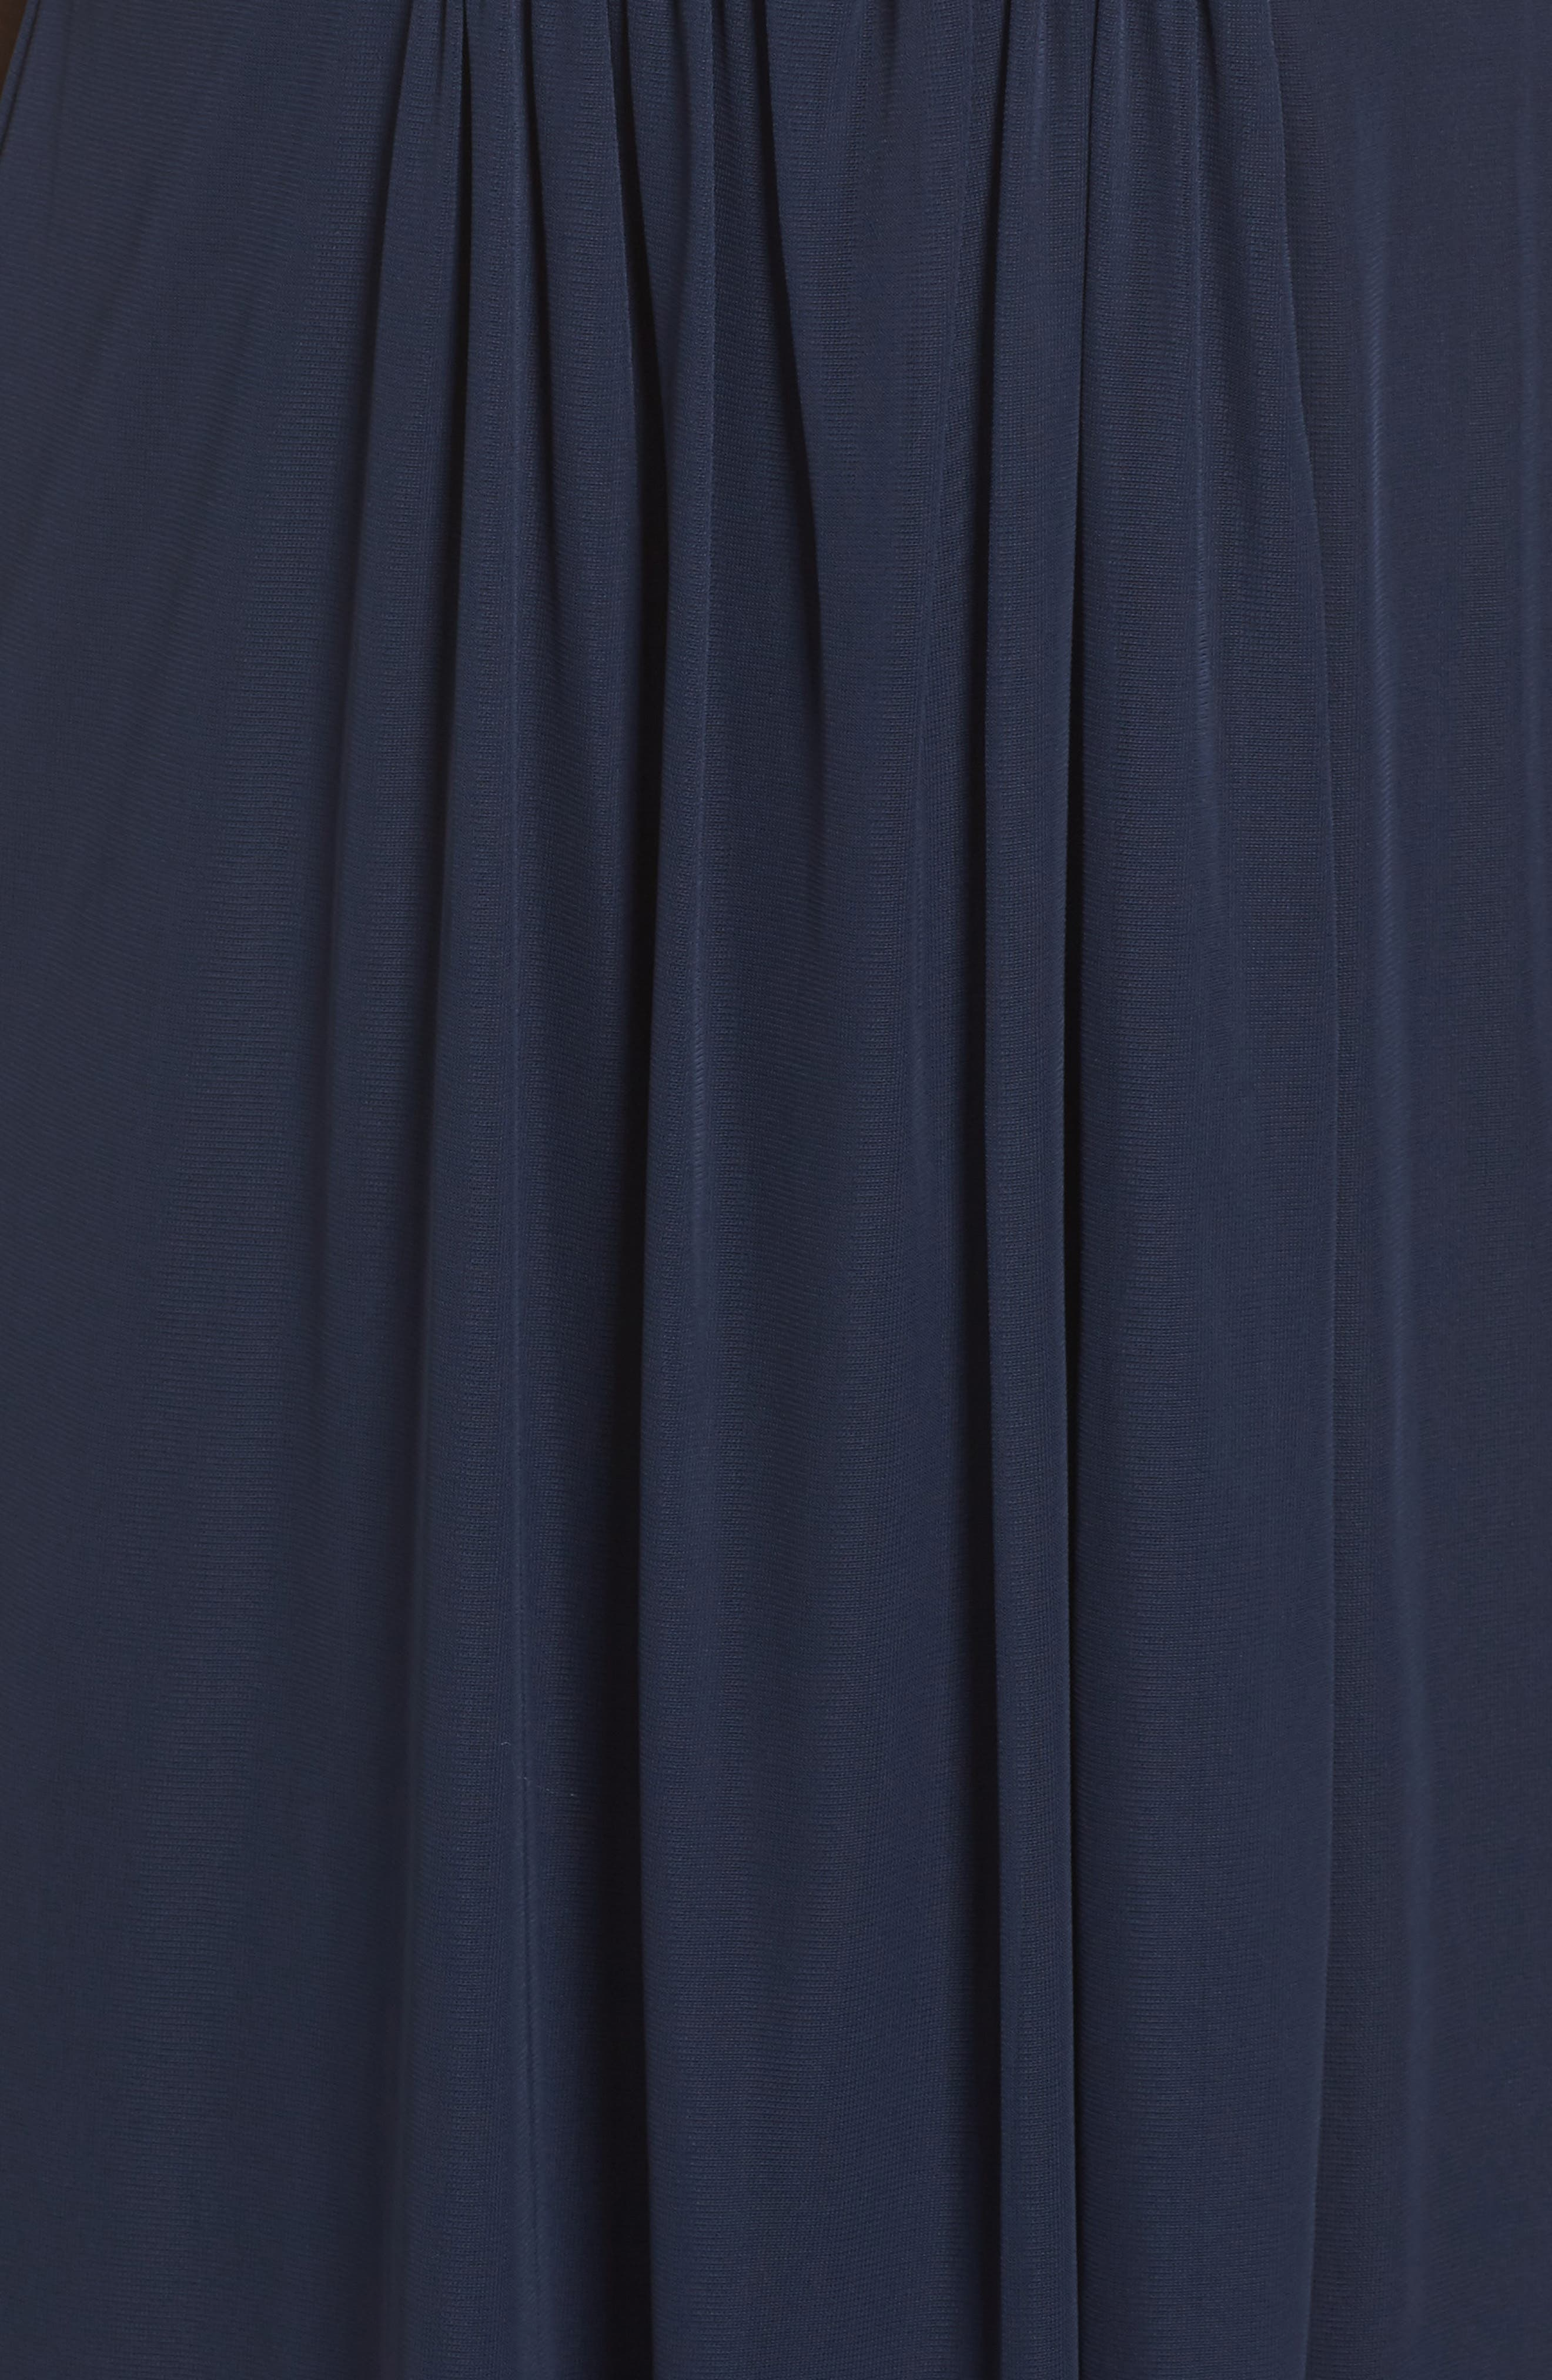 Embellished Gown,                             Alternate thumbnail 5, color,                             Navy